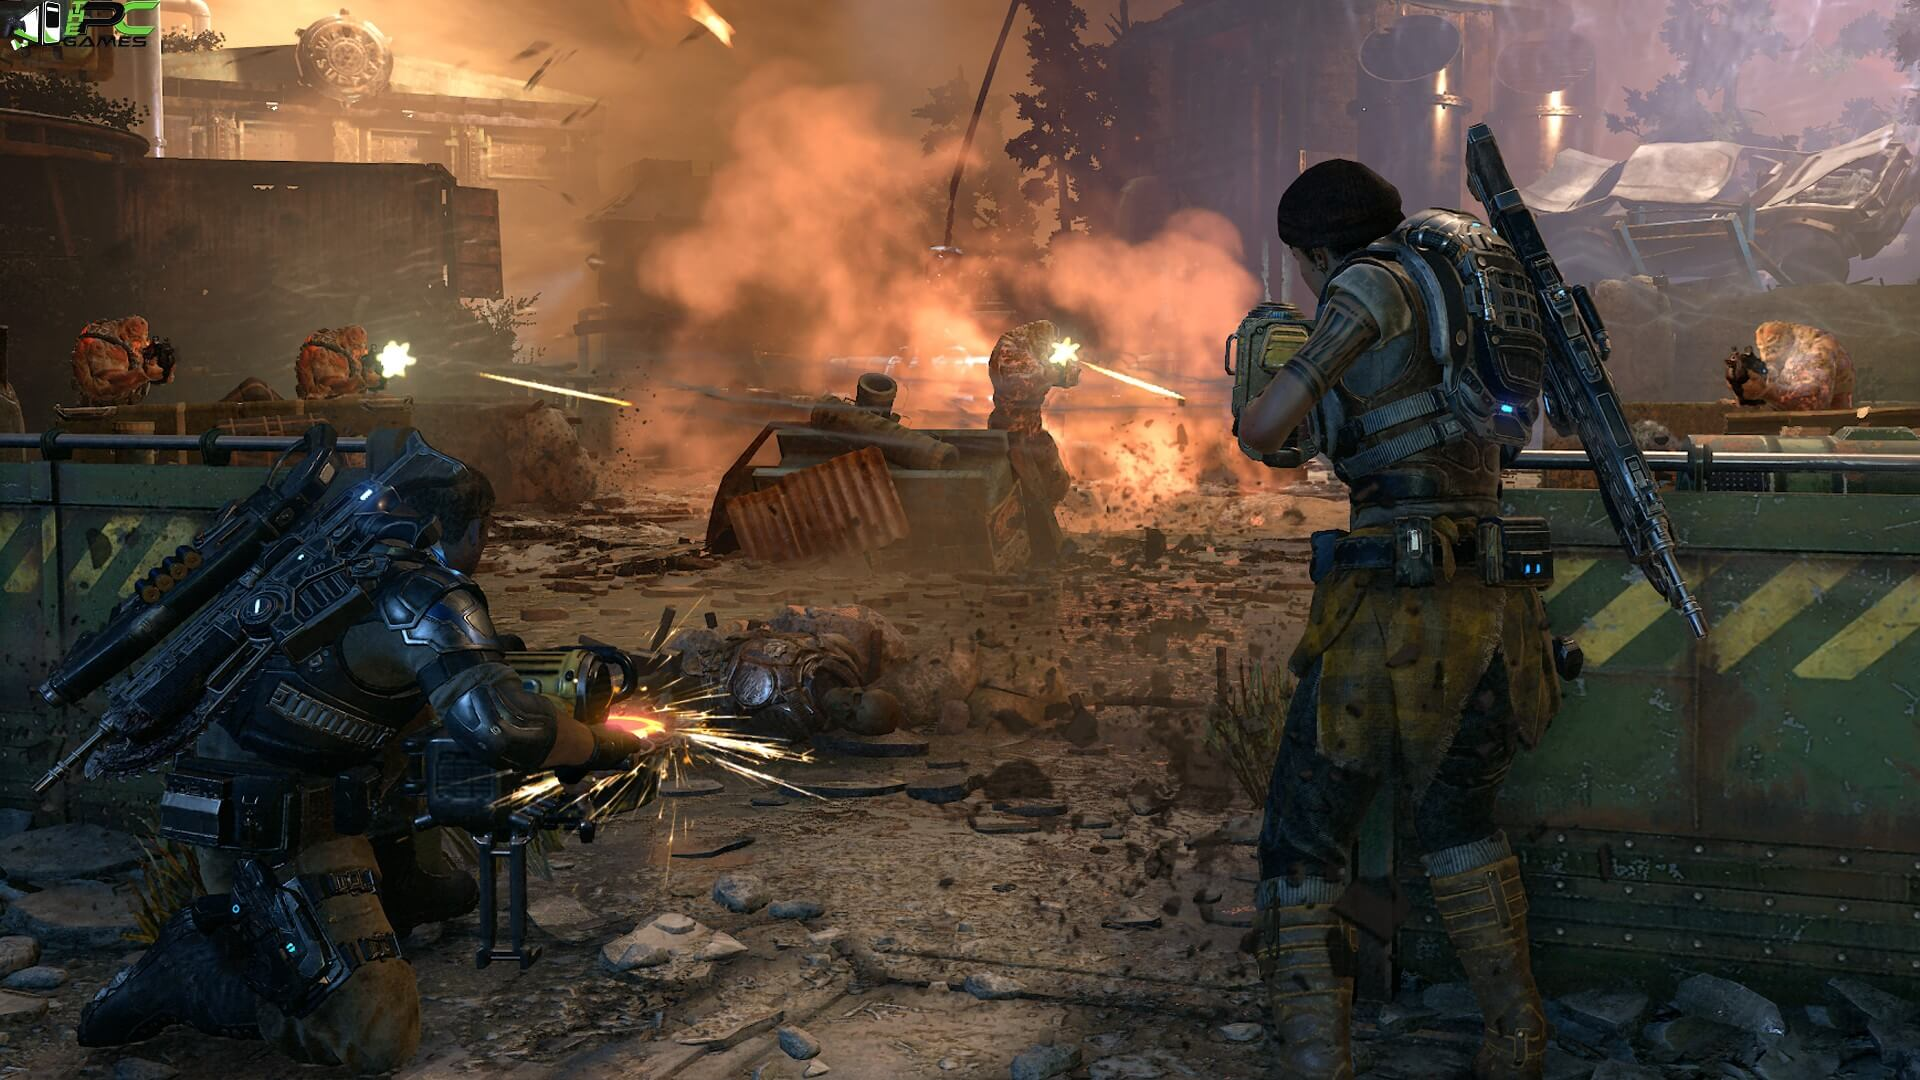 download gears of war pc game highly compressed